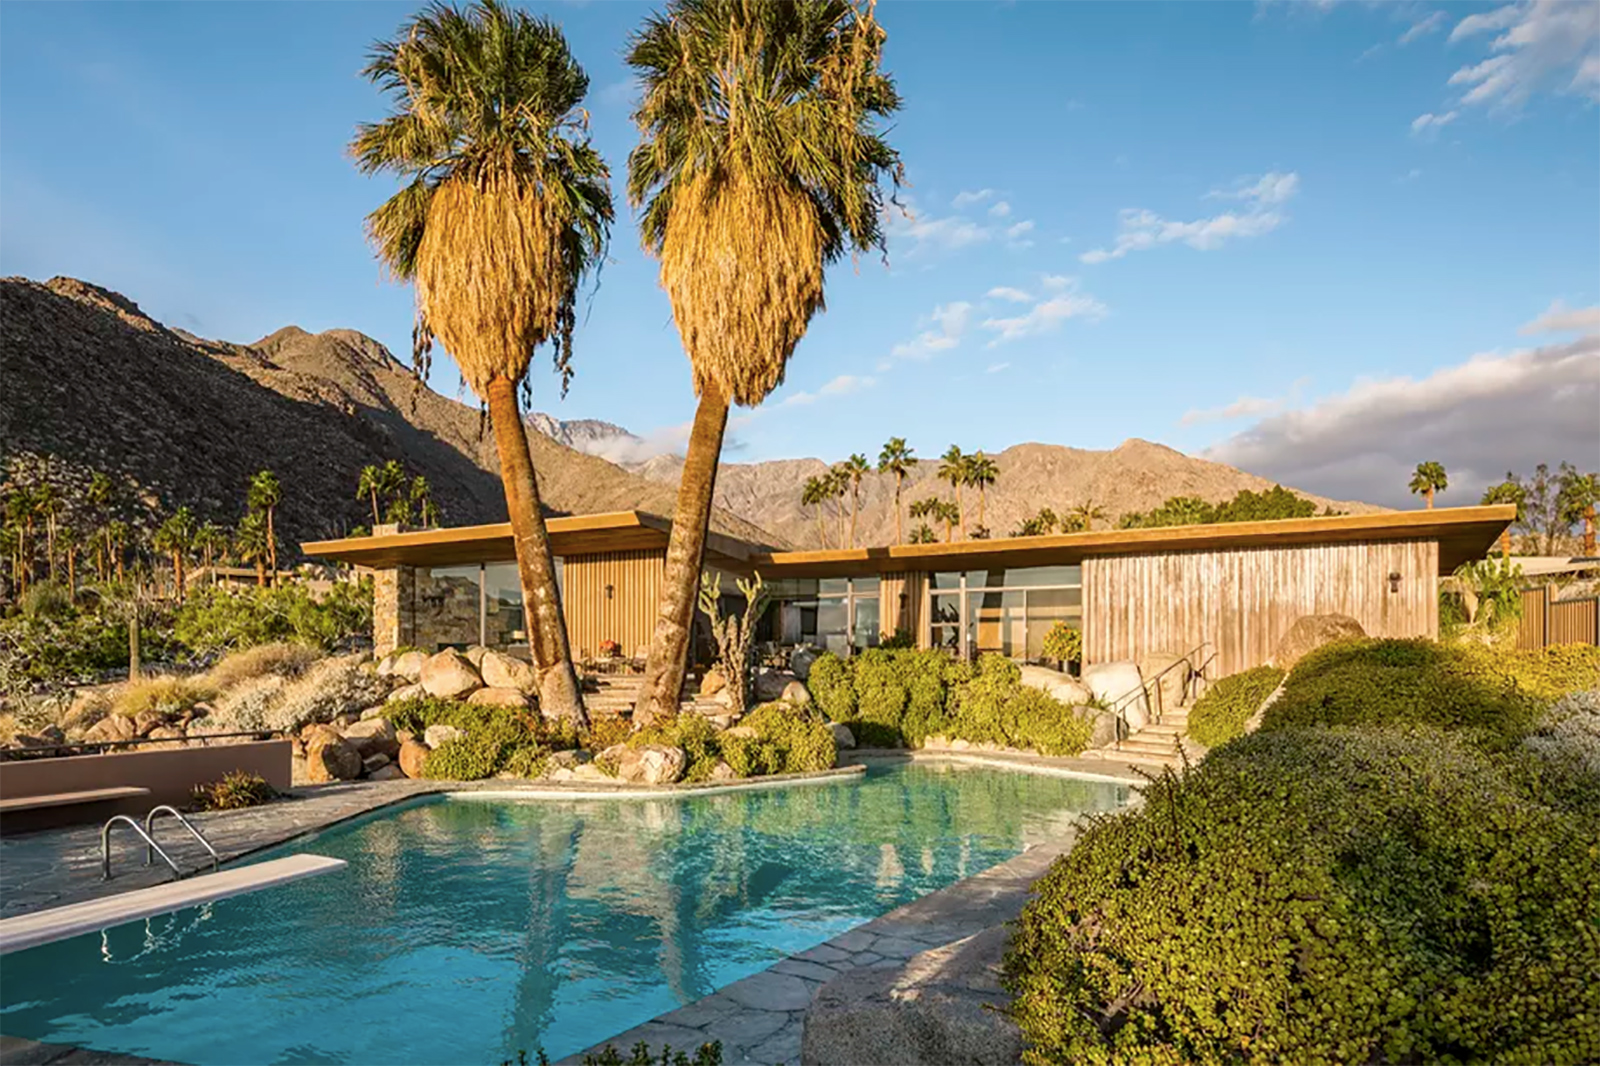 7 of the best midcentury homes for sale in the us for New modern homes palm springs